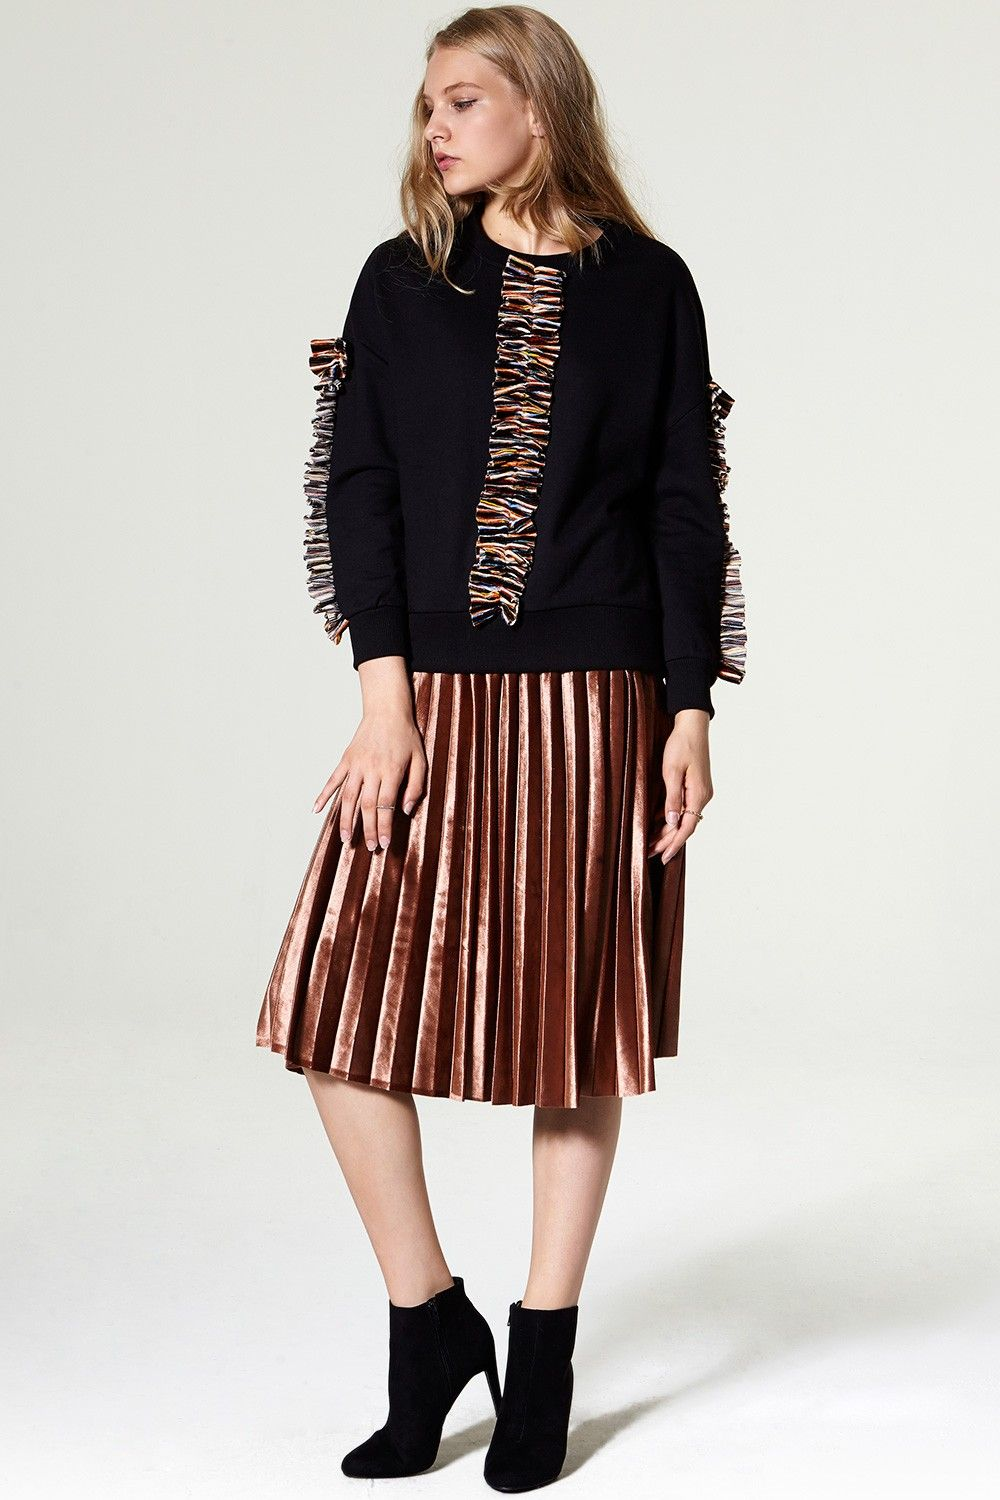 af9ca0ab3247 Helina Velvet Pleated Skirt Discover the latest fashion trends online at  storets.com #storets online shop #storets clothing #storets store